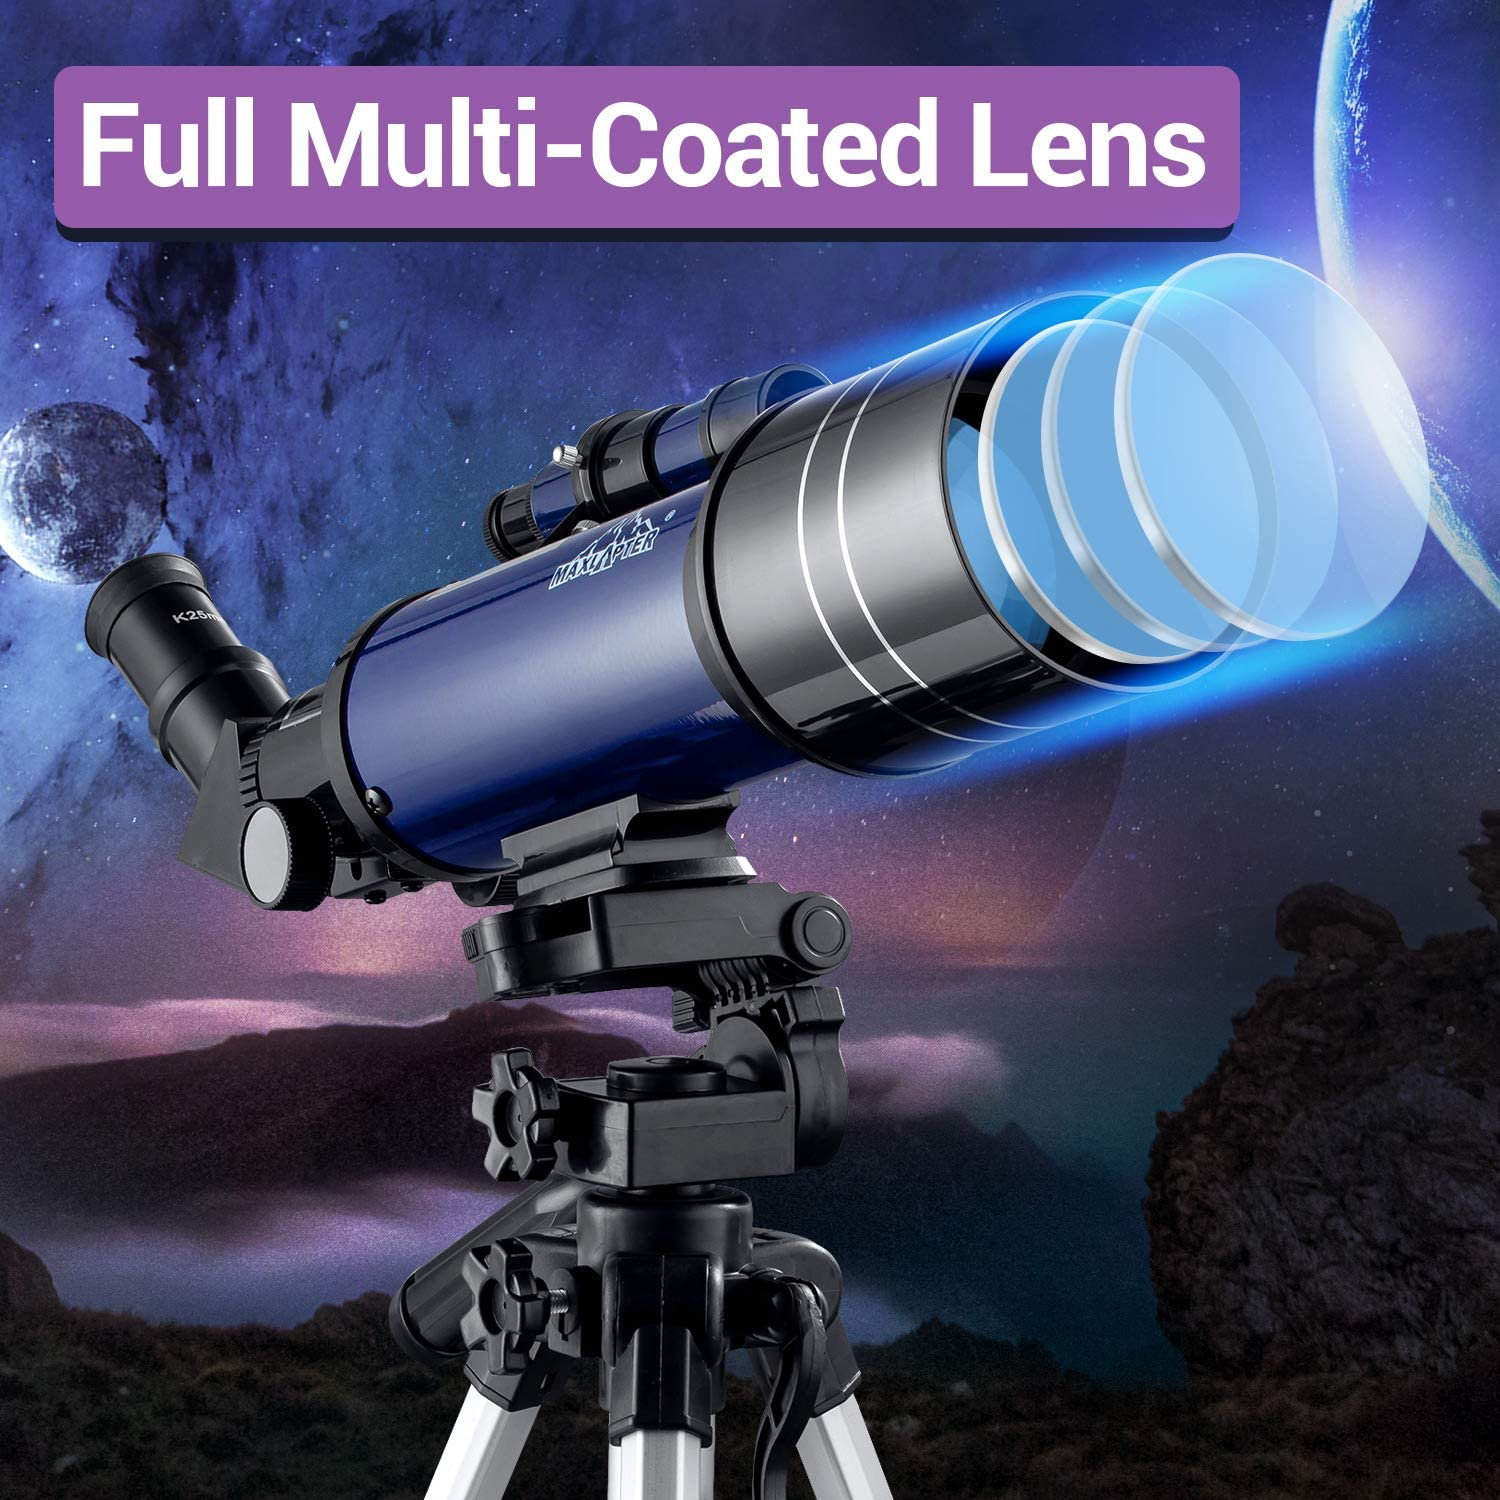 Smartphone Adapter 70mm Travel Refractor Telescope for Astronomy with Adjustable Tripod MAXLAPTER Telescope for Kids and Beginners Backpack Camera Shutter Wire Control